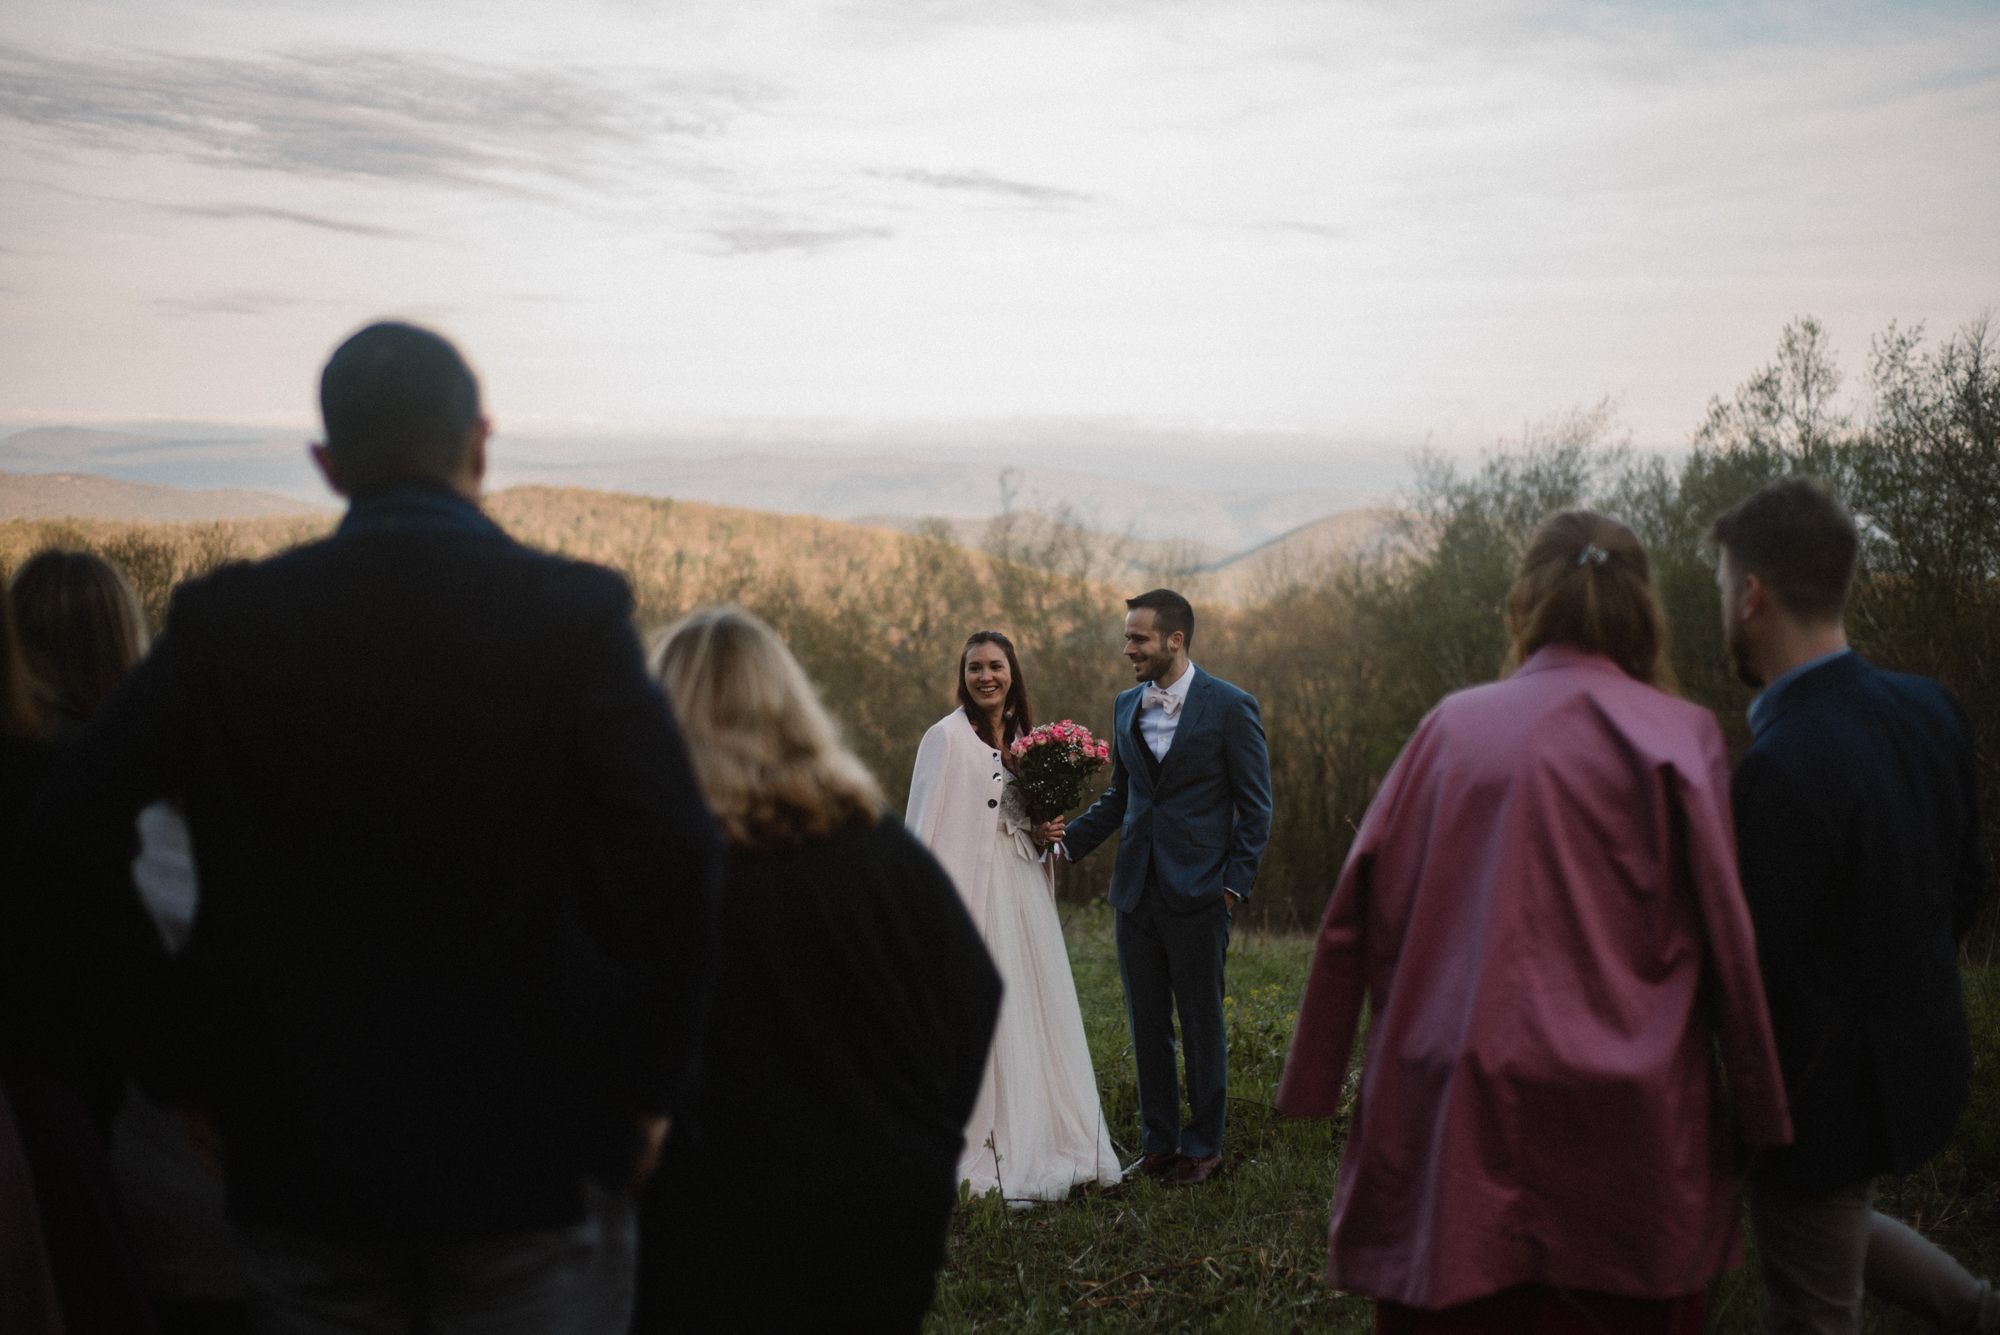 Paula and Andrew - Small Adventurous Wedding in Shenandoah National Park - Blue Ridge Mountain Wedding - White Sails Creative - Mountain Elopement_15.jpg